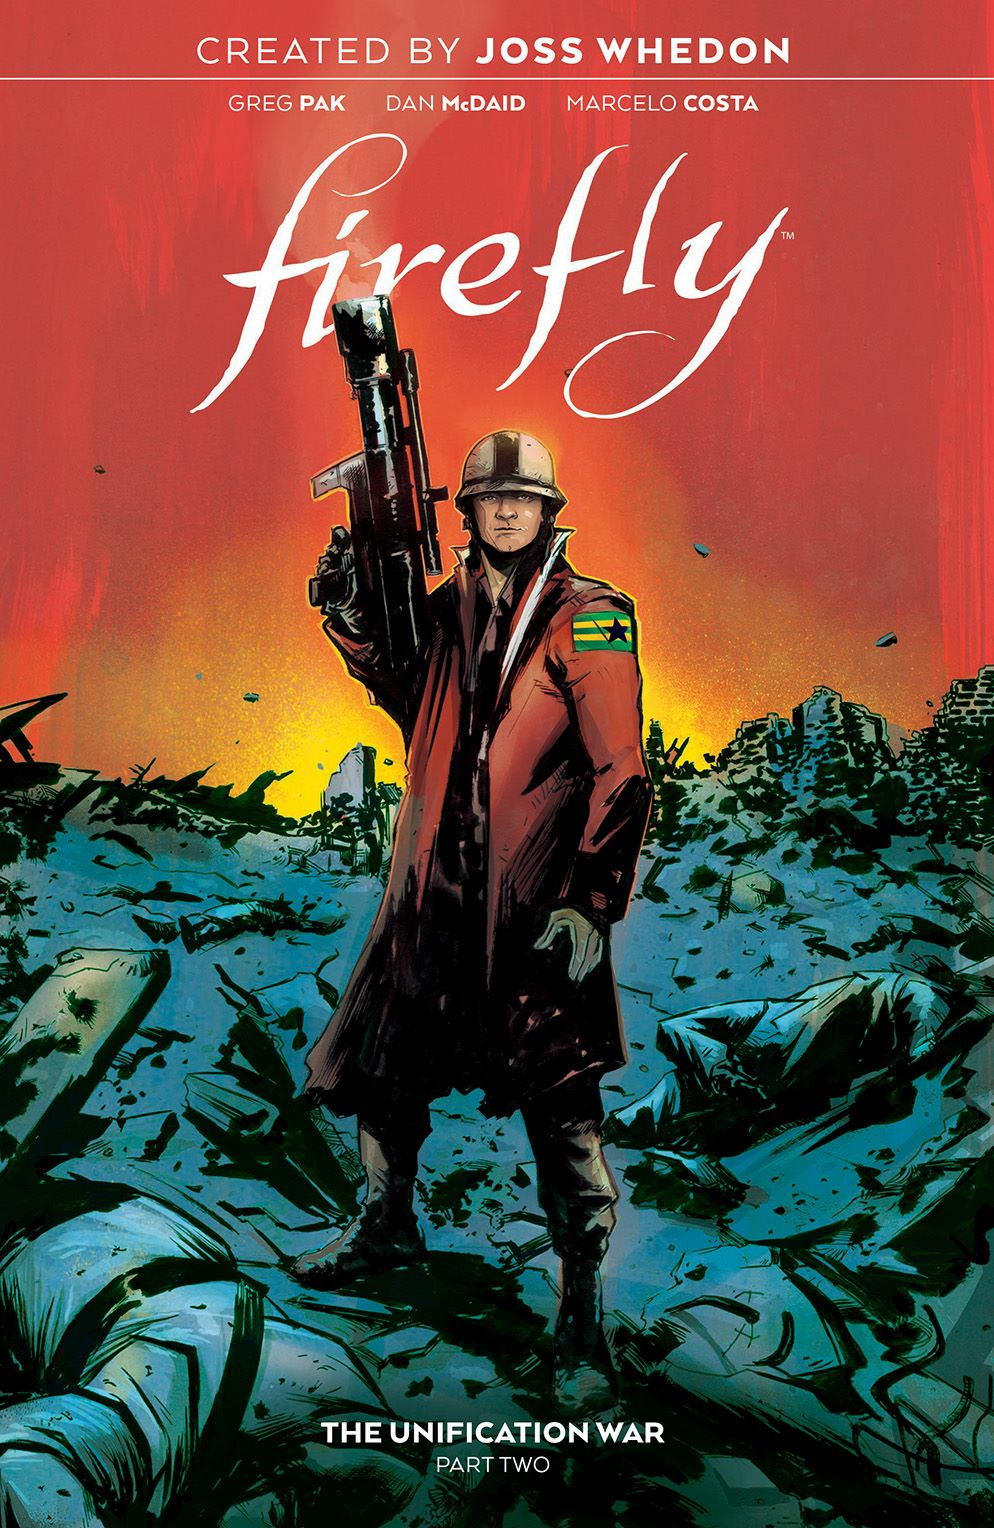 Firefly_UnificationWar_v2_SC_Cover ComicList Previews: FIREFLY THE UNIFICATION WAR VOLUME 2 TP